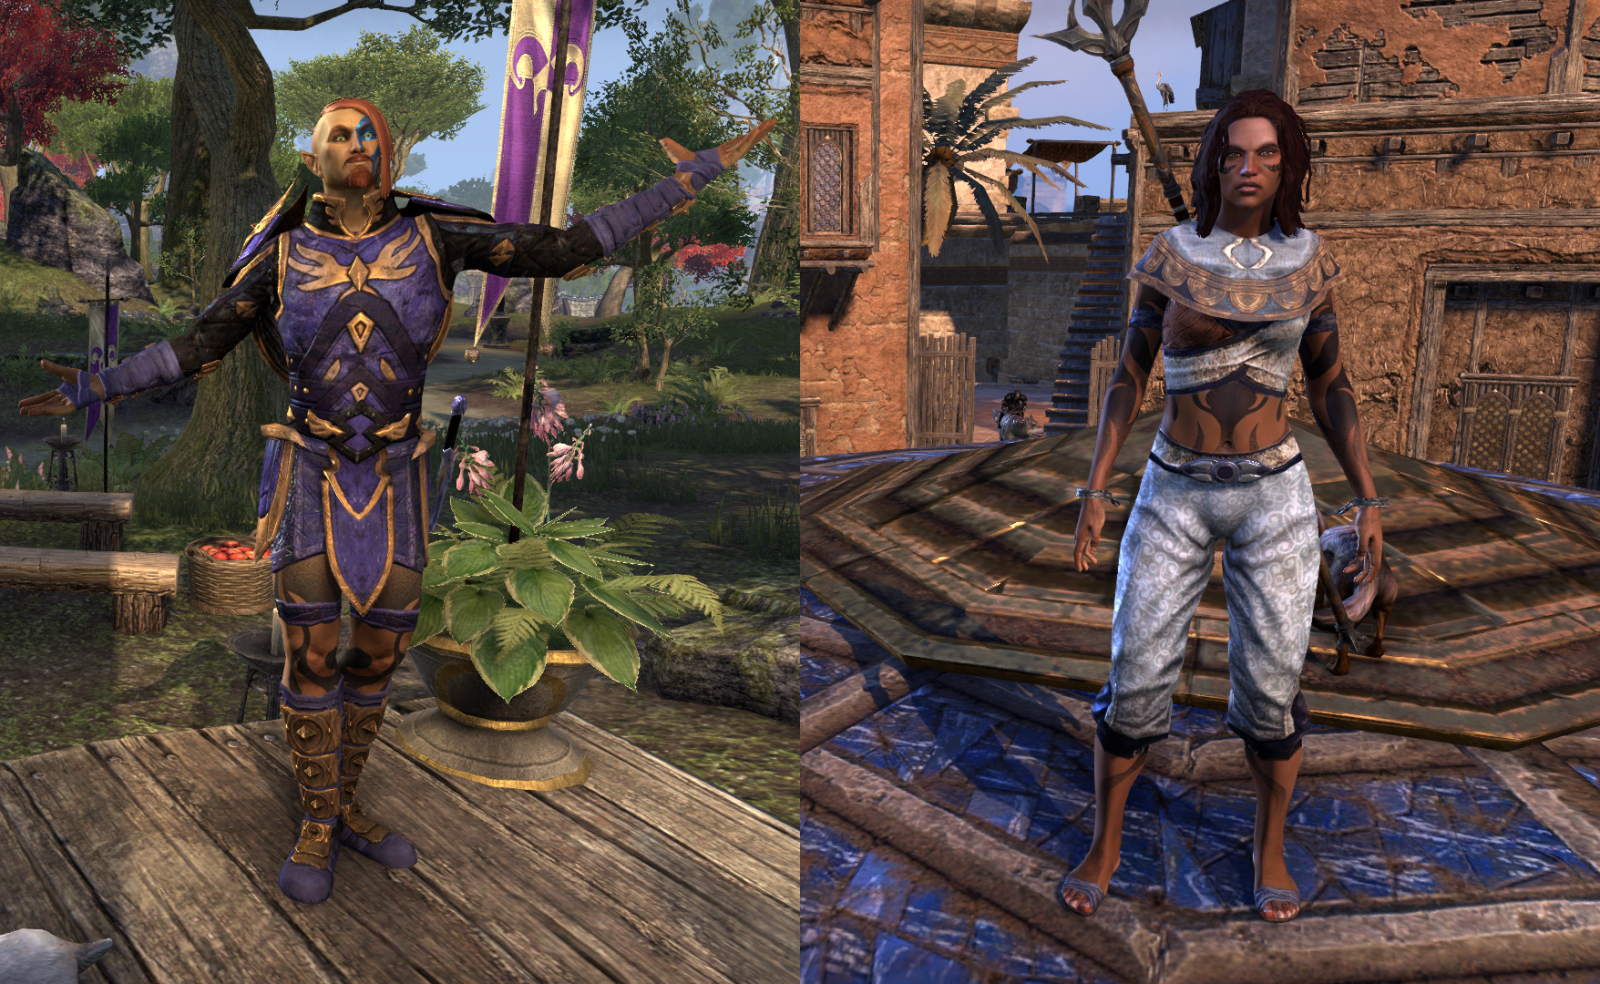 More ESO Outfits